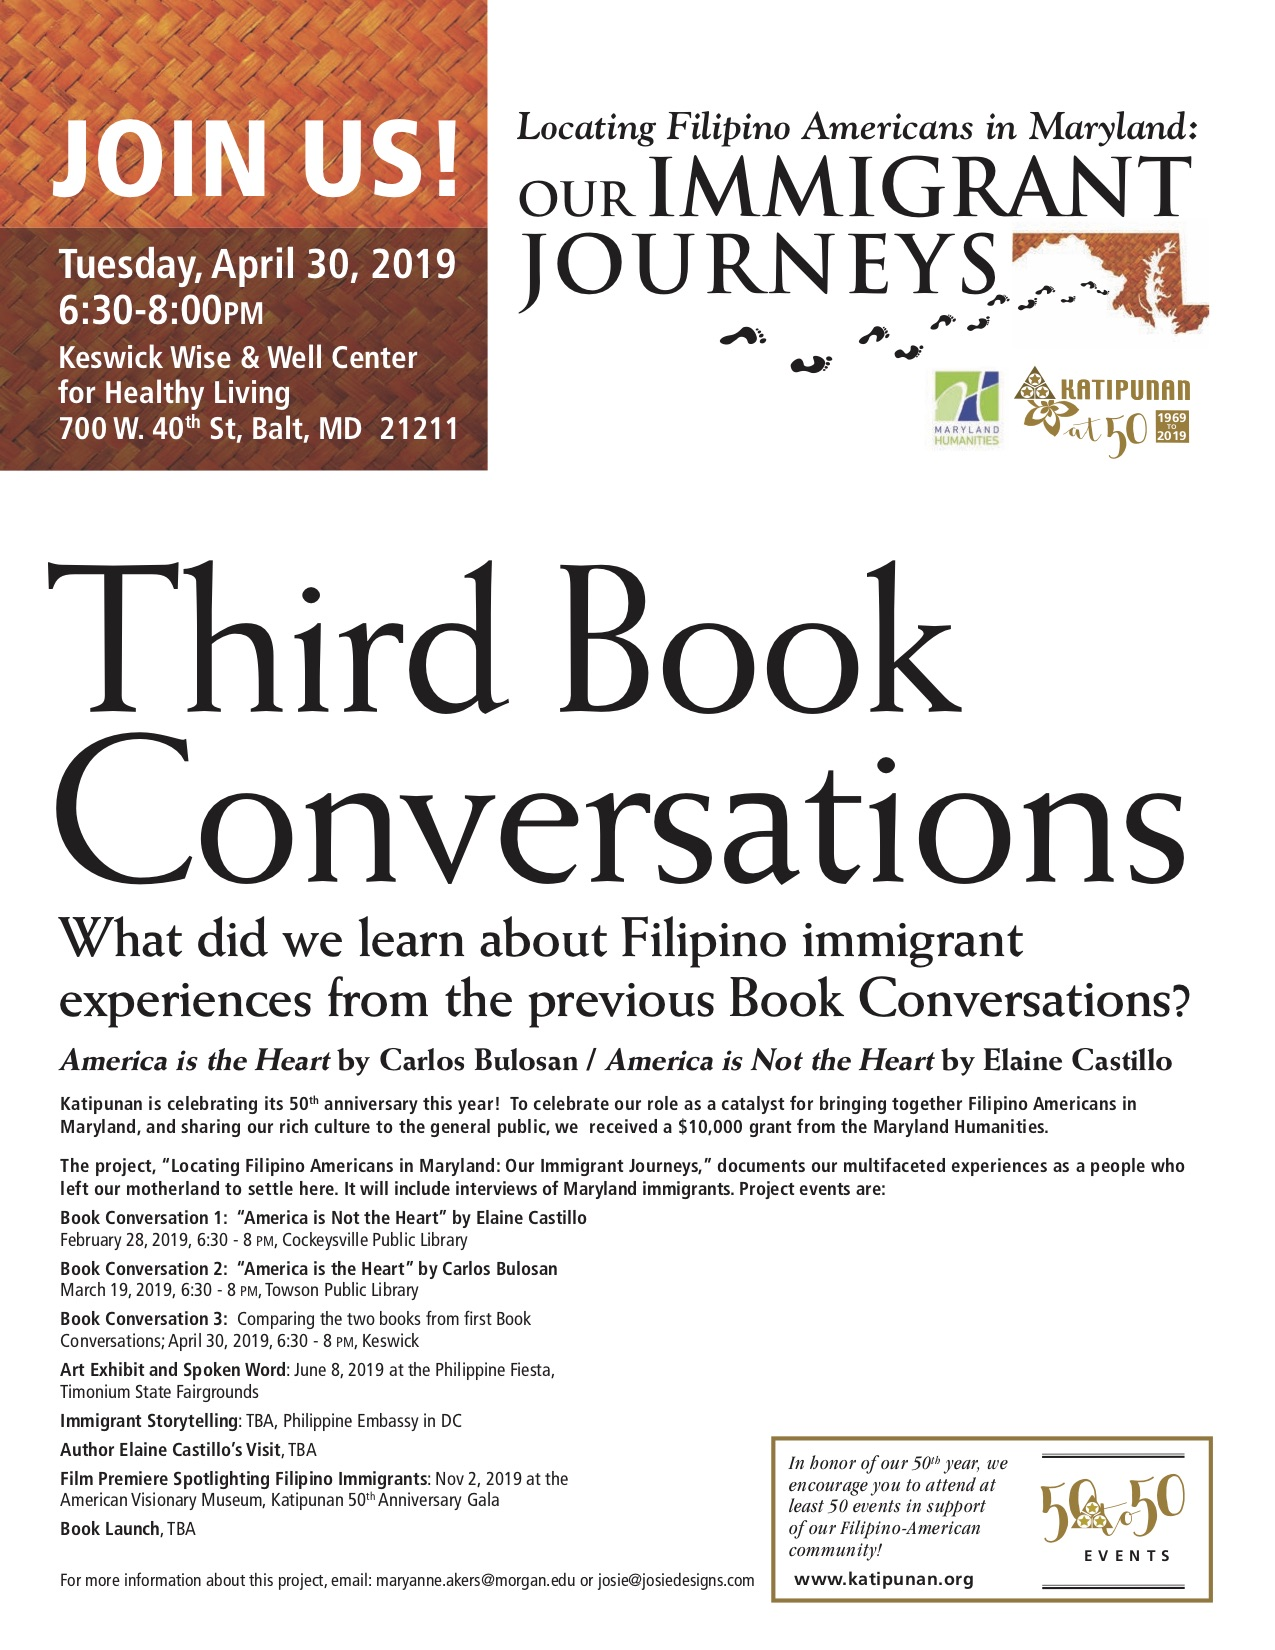 ThirdConversationFlyer2.jpg